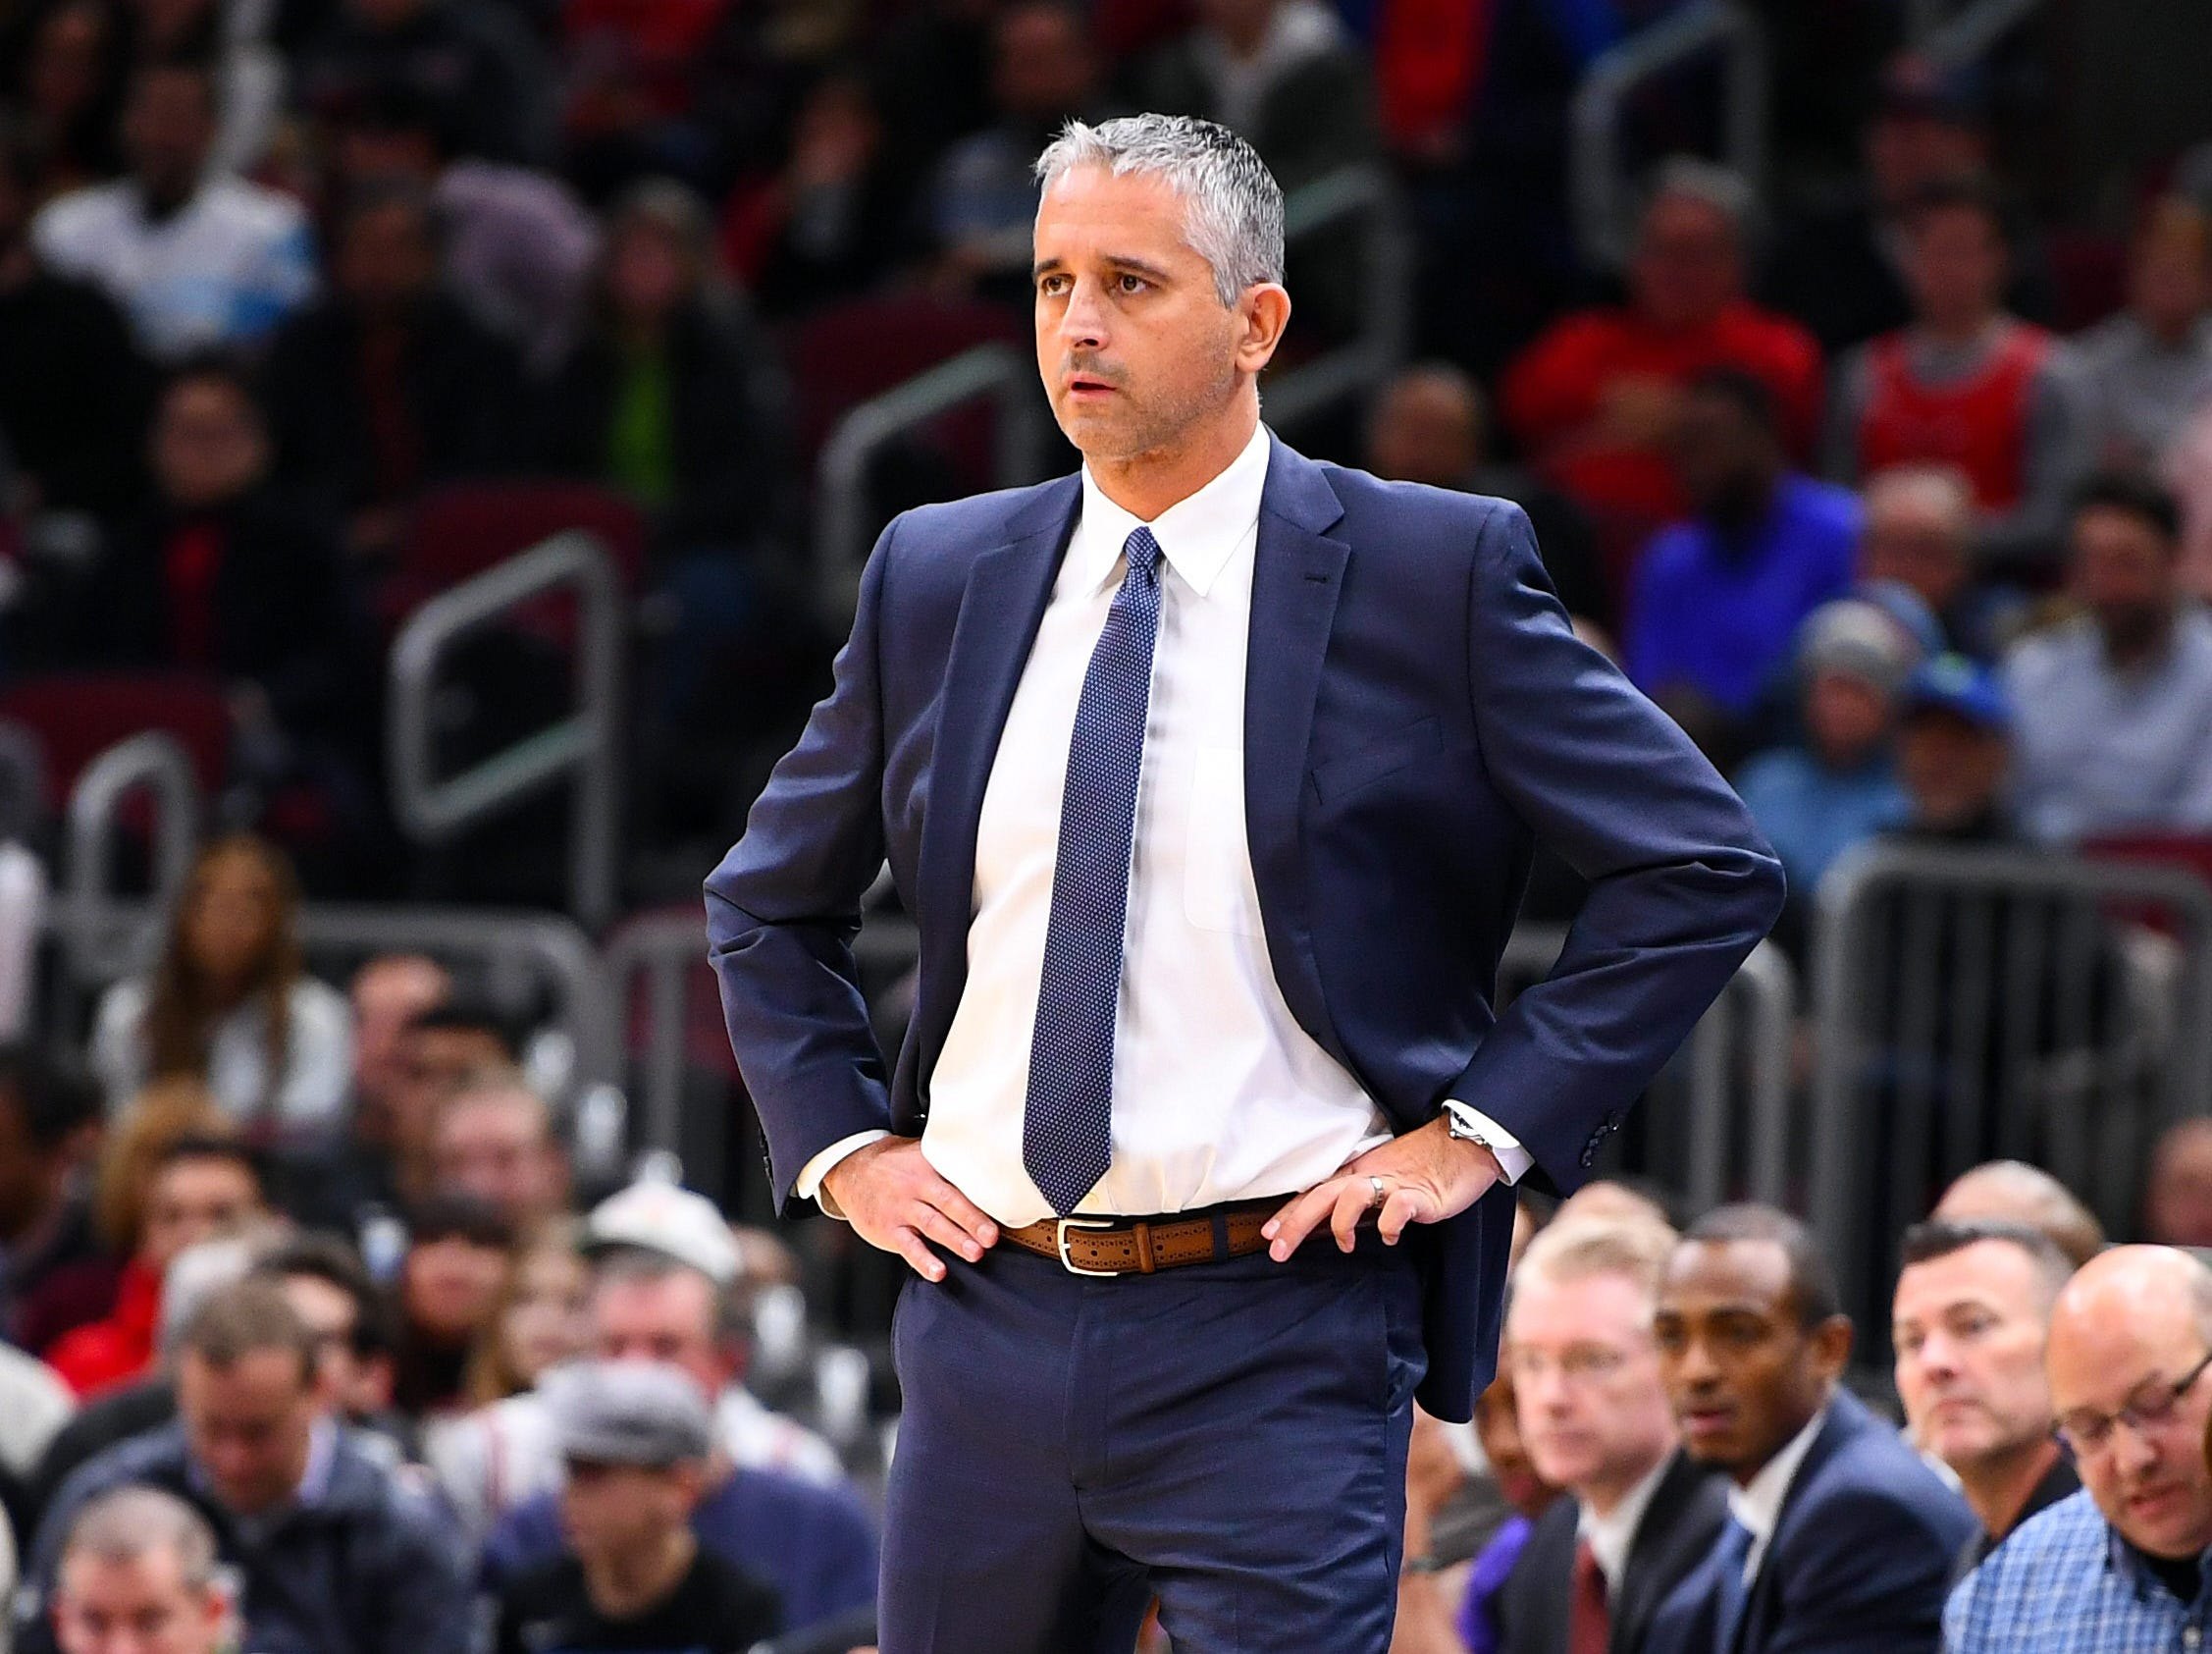 Nov 21, 2018; Chicago, IL, USA; Phoenix Suns head coach Igor Kokoskov during the first half against the Chicago Bulls at the United Center. Mandatory Credit: Mike DiNovo-USA TODAY Sports